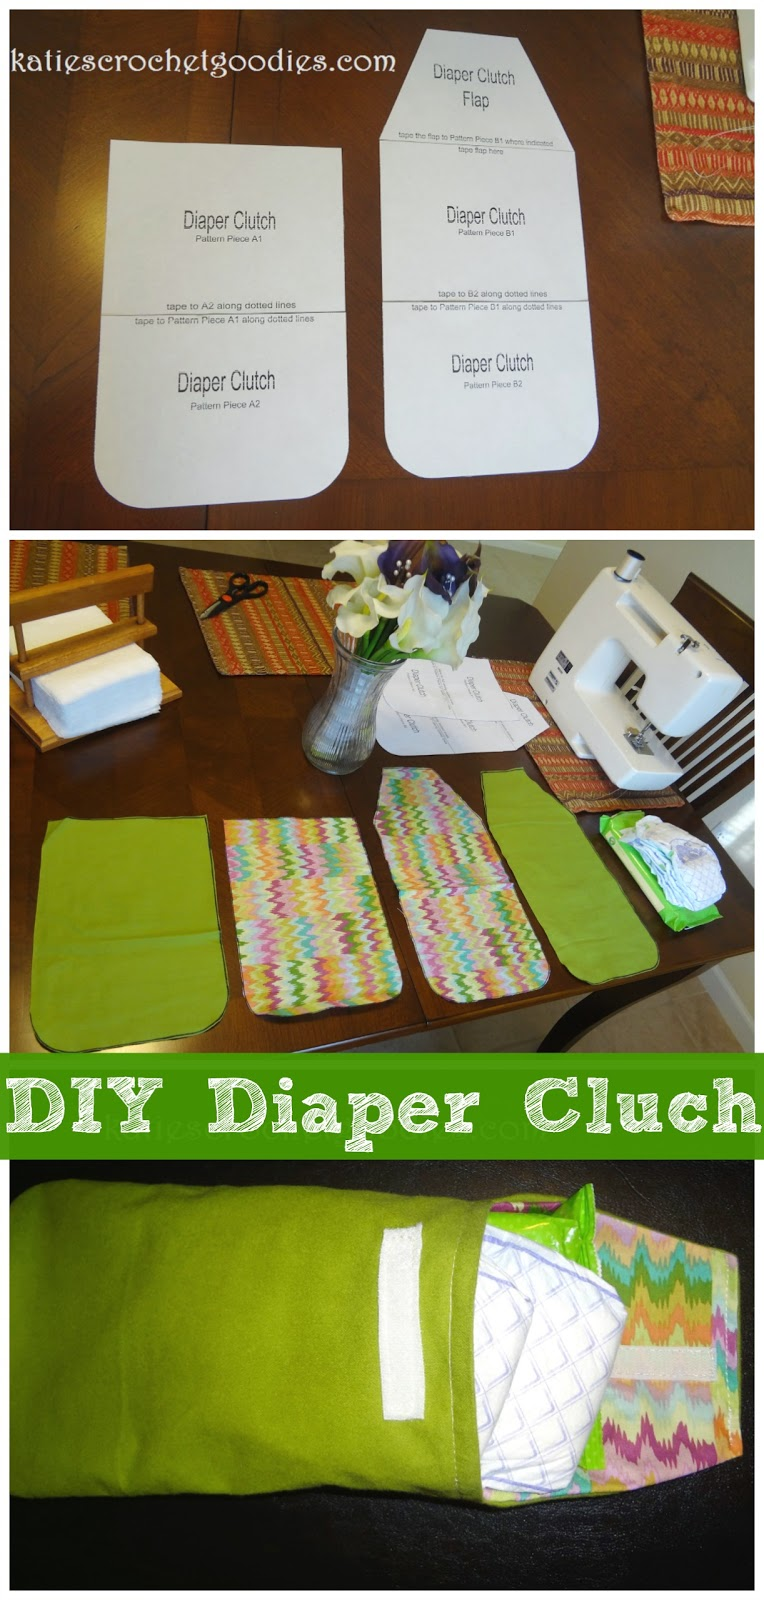 Diy Diaper Clutch Tutorial Katie S Crochet Goodies